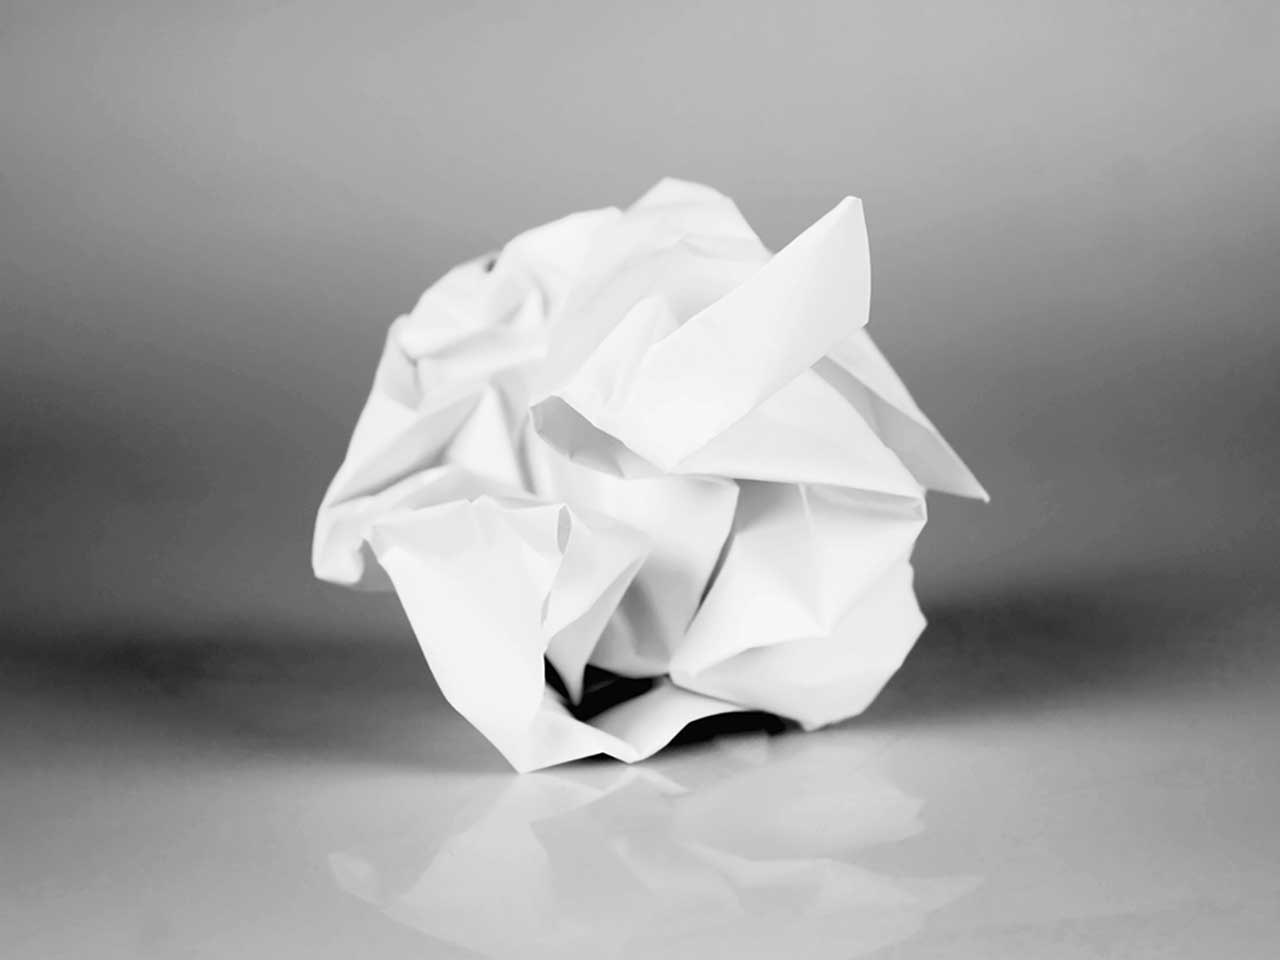 Scrunched up ball of paper